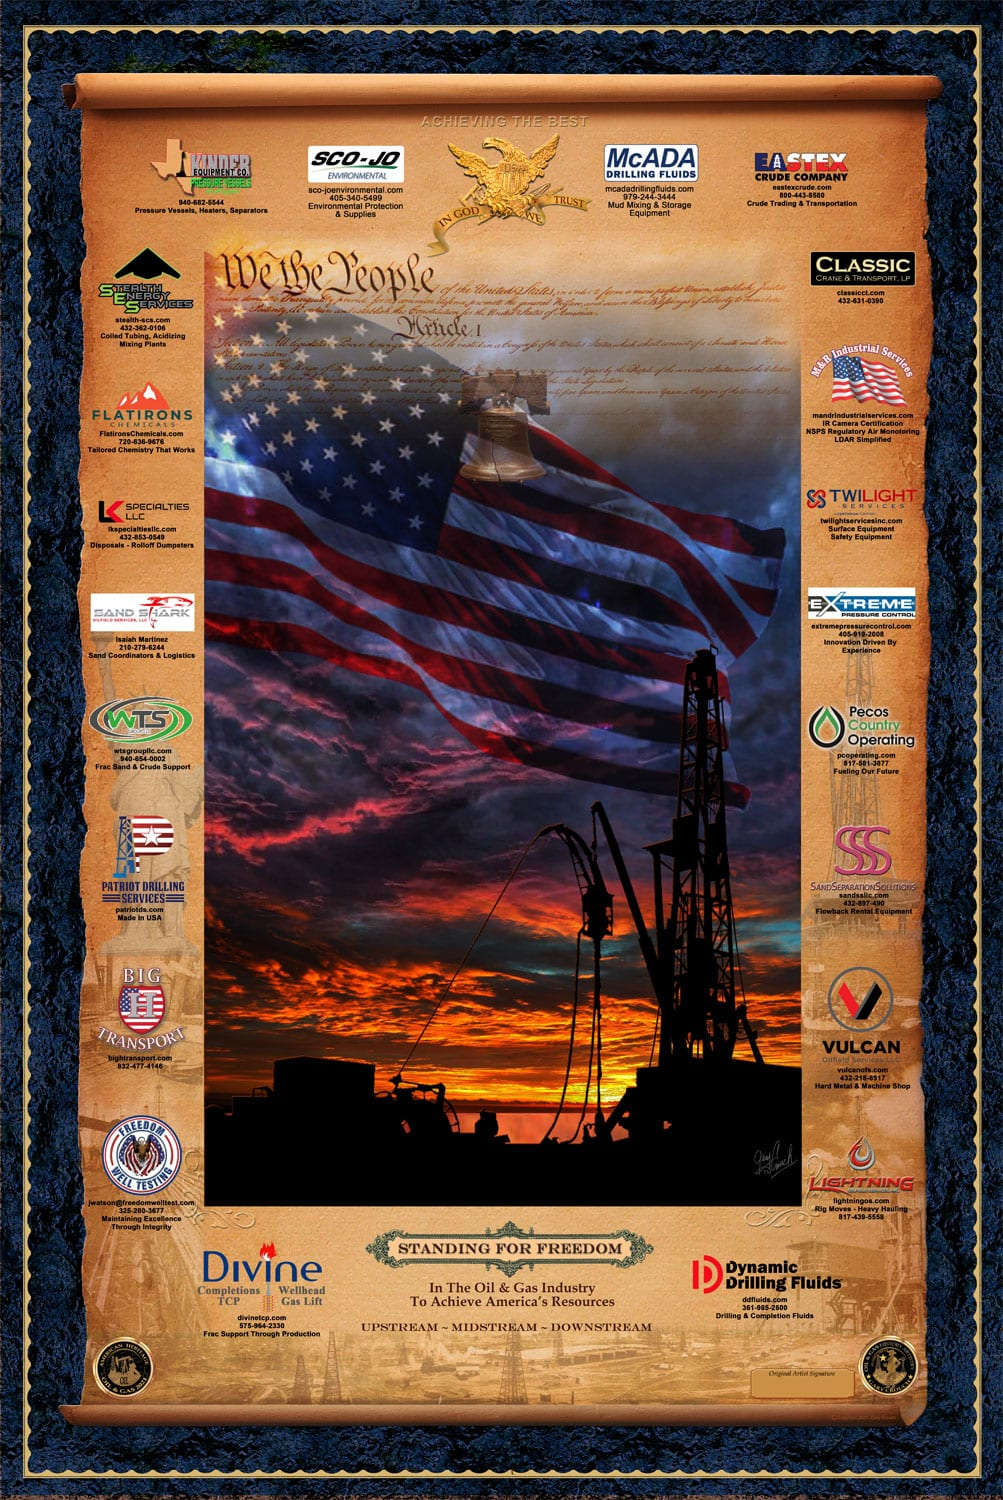 Standing For Freedom art print by Gary Crouch